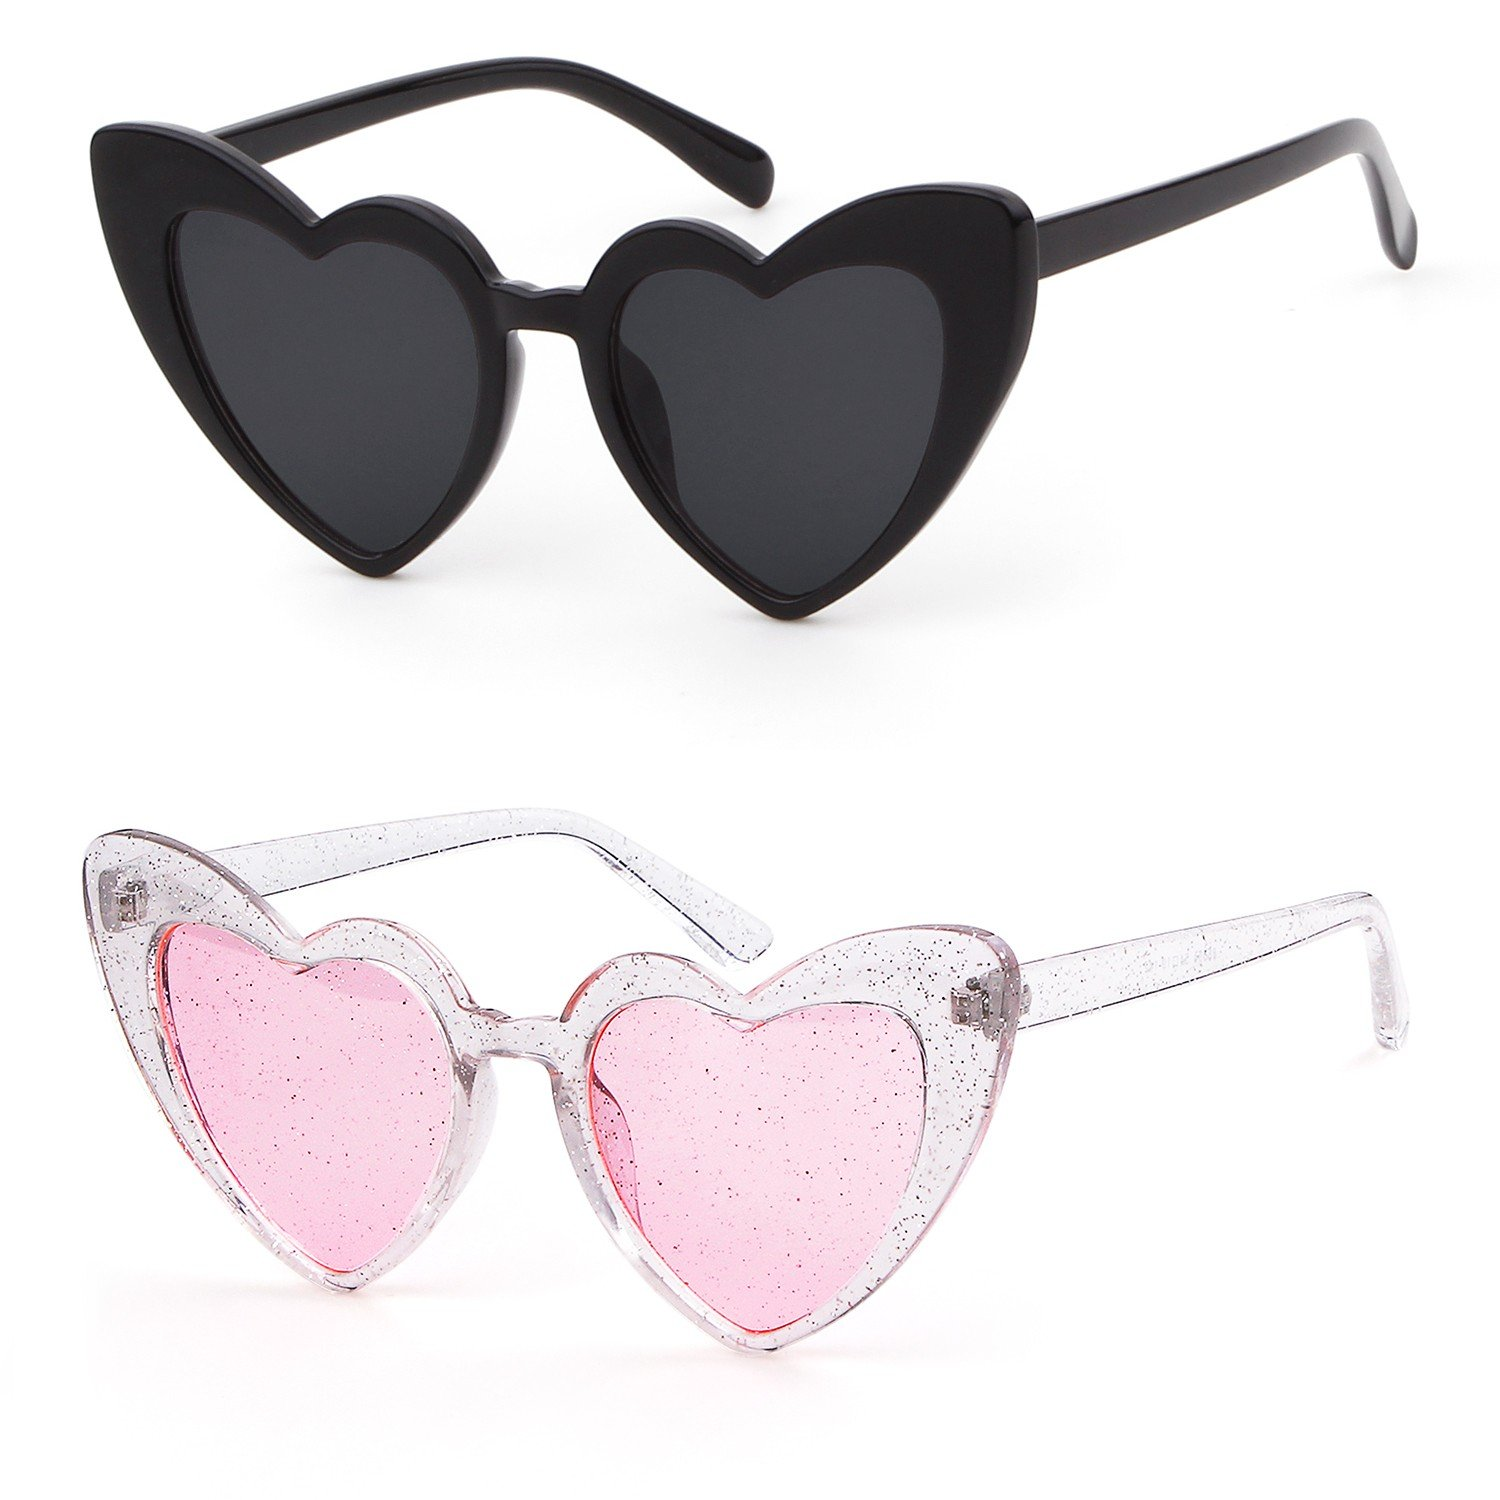 Clout Goggle Heart Sunglasses Vintage Cat Eye Mod Style Retro Kurt Cobain Glasses (Black&Transparent Pink, 50)